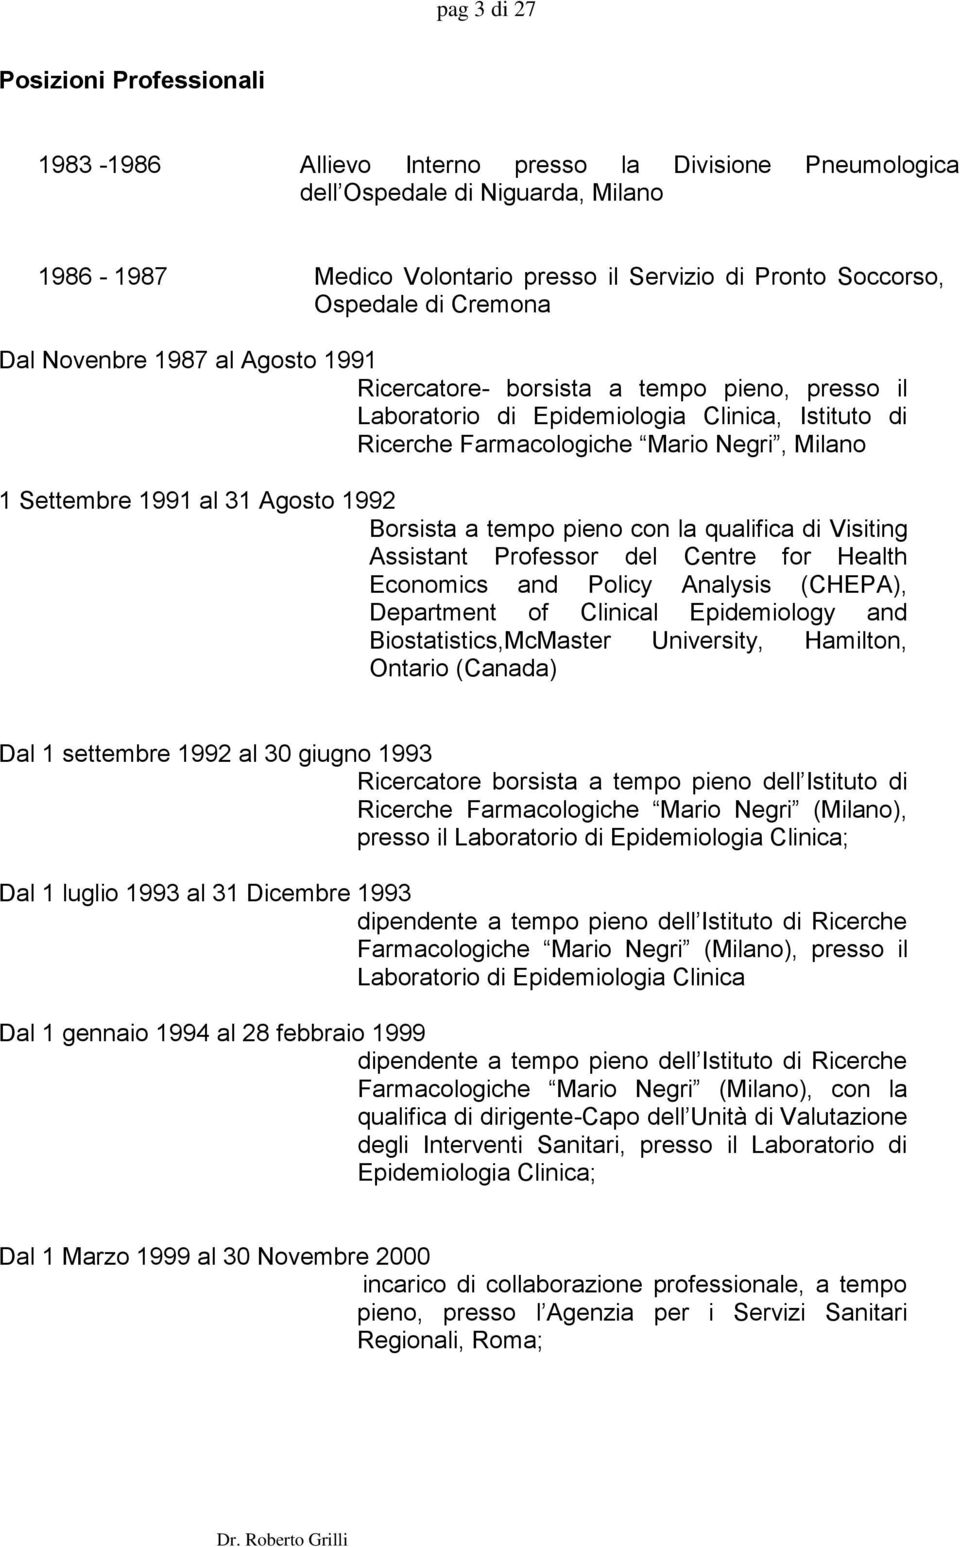 Settembre 1991 al 31 Agosto 1992 Borsista a tempo pieno con la qualifica di Visiting Assistant Professor del Centre for Health Economics and Policy Analysis (CHEPA), Department of Clinical